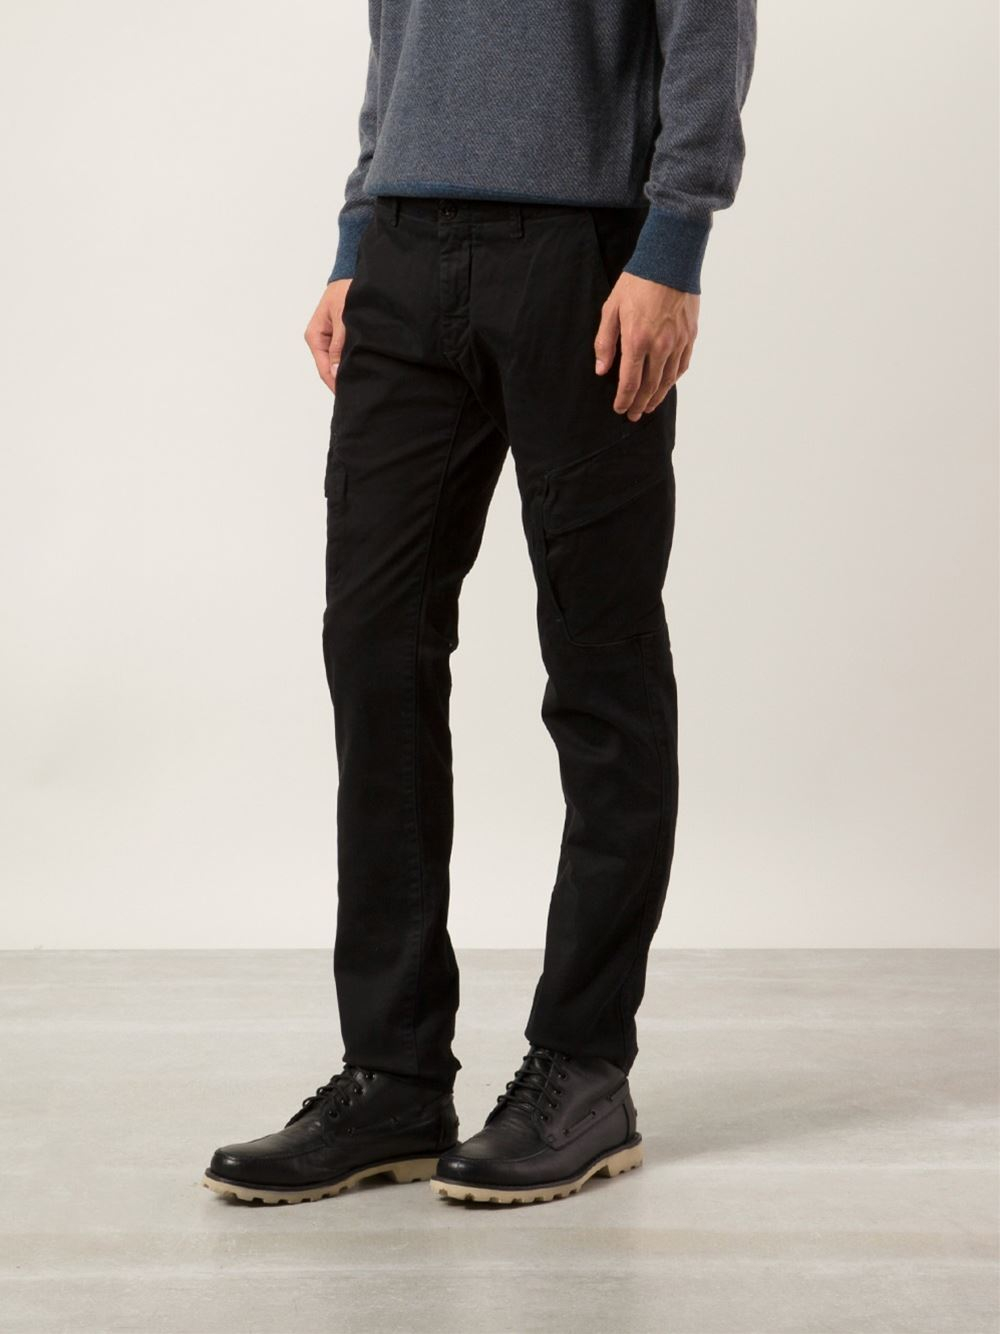 stone island chino trousers in black for men lyst. Black Bedroom Furniture Sets. Home Design Ideas